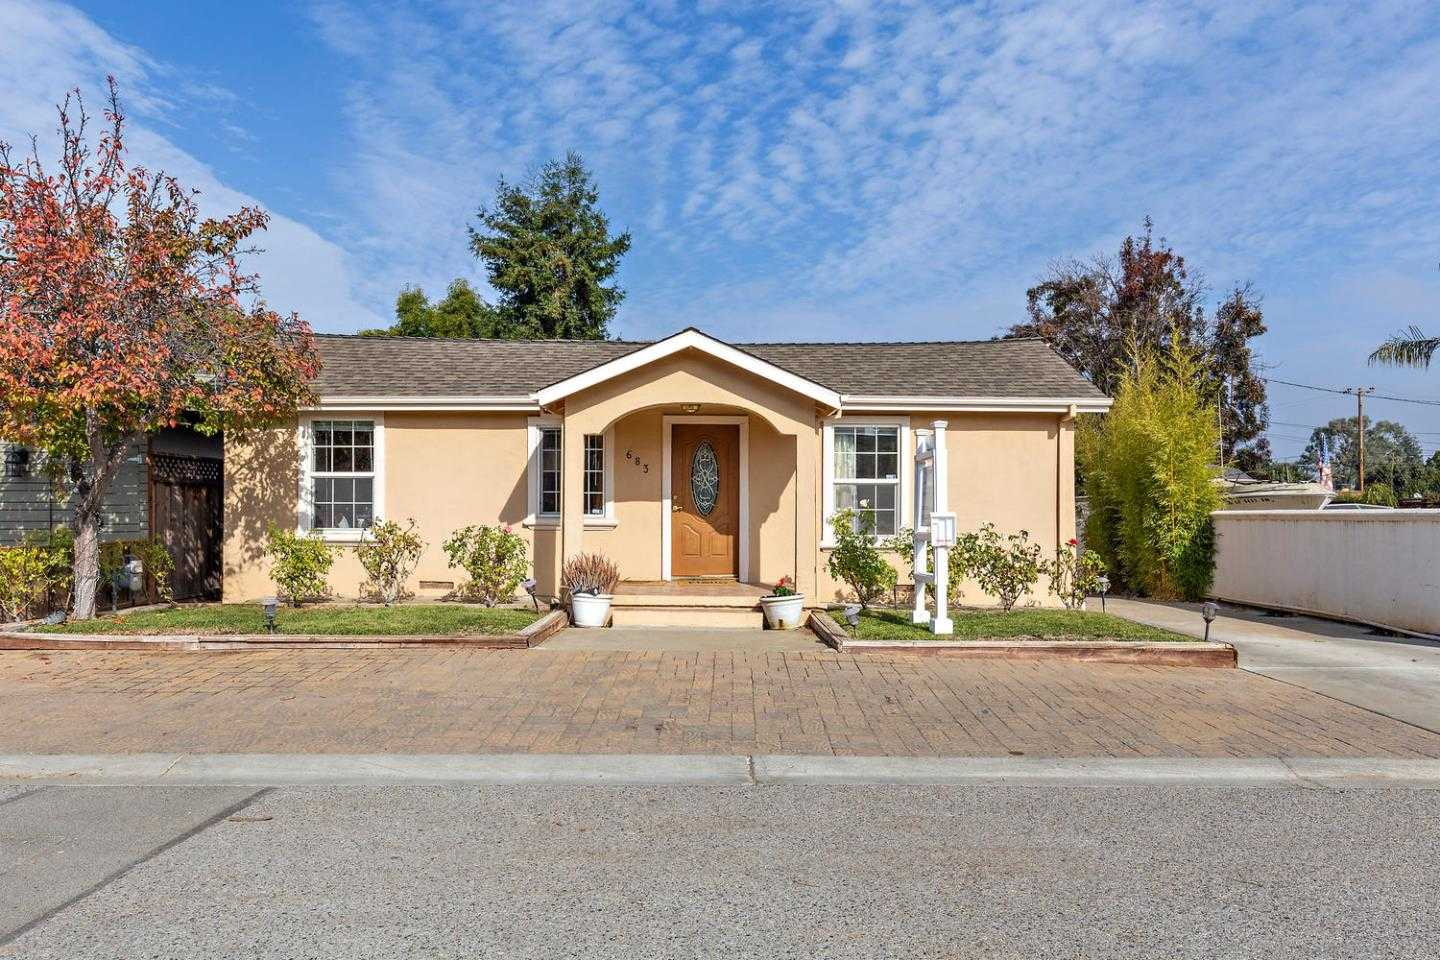 $1,770,000 - 3Br/2Ba -  for Sale in Sunnyvale